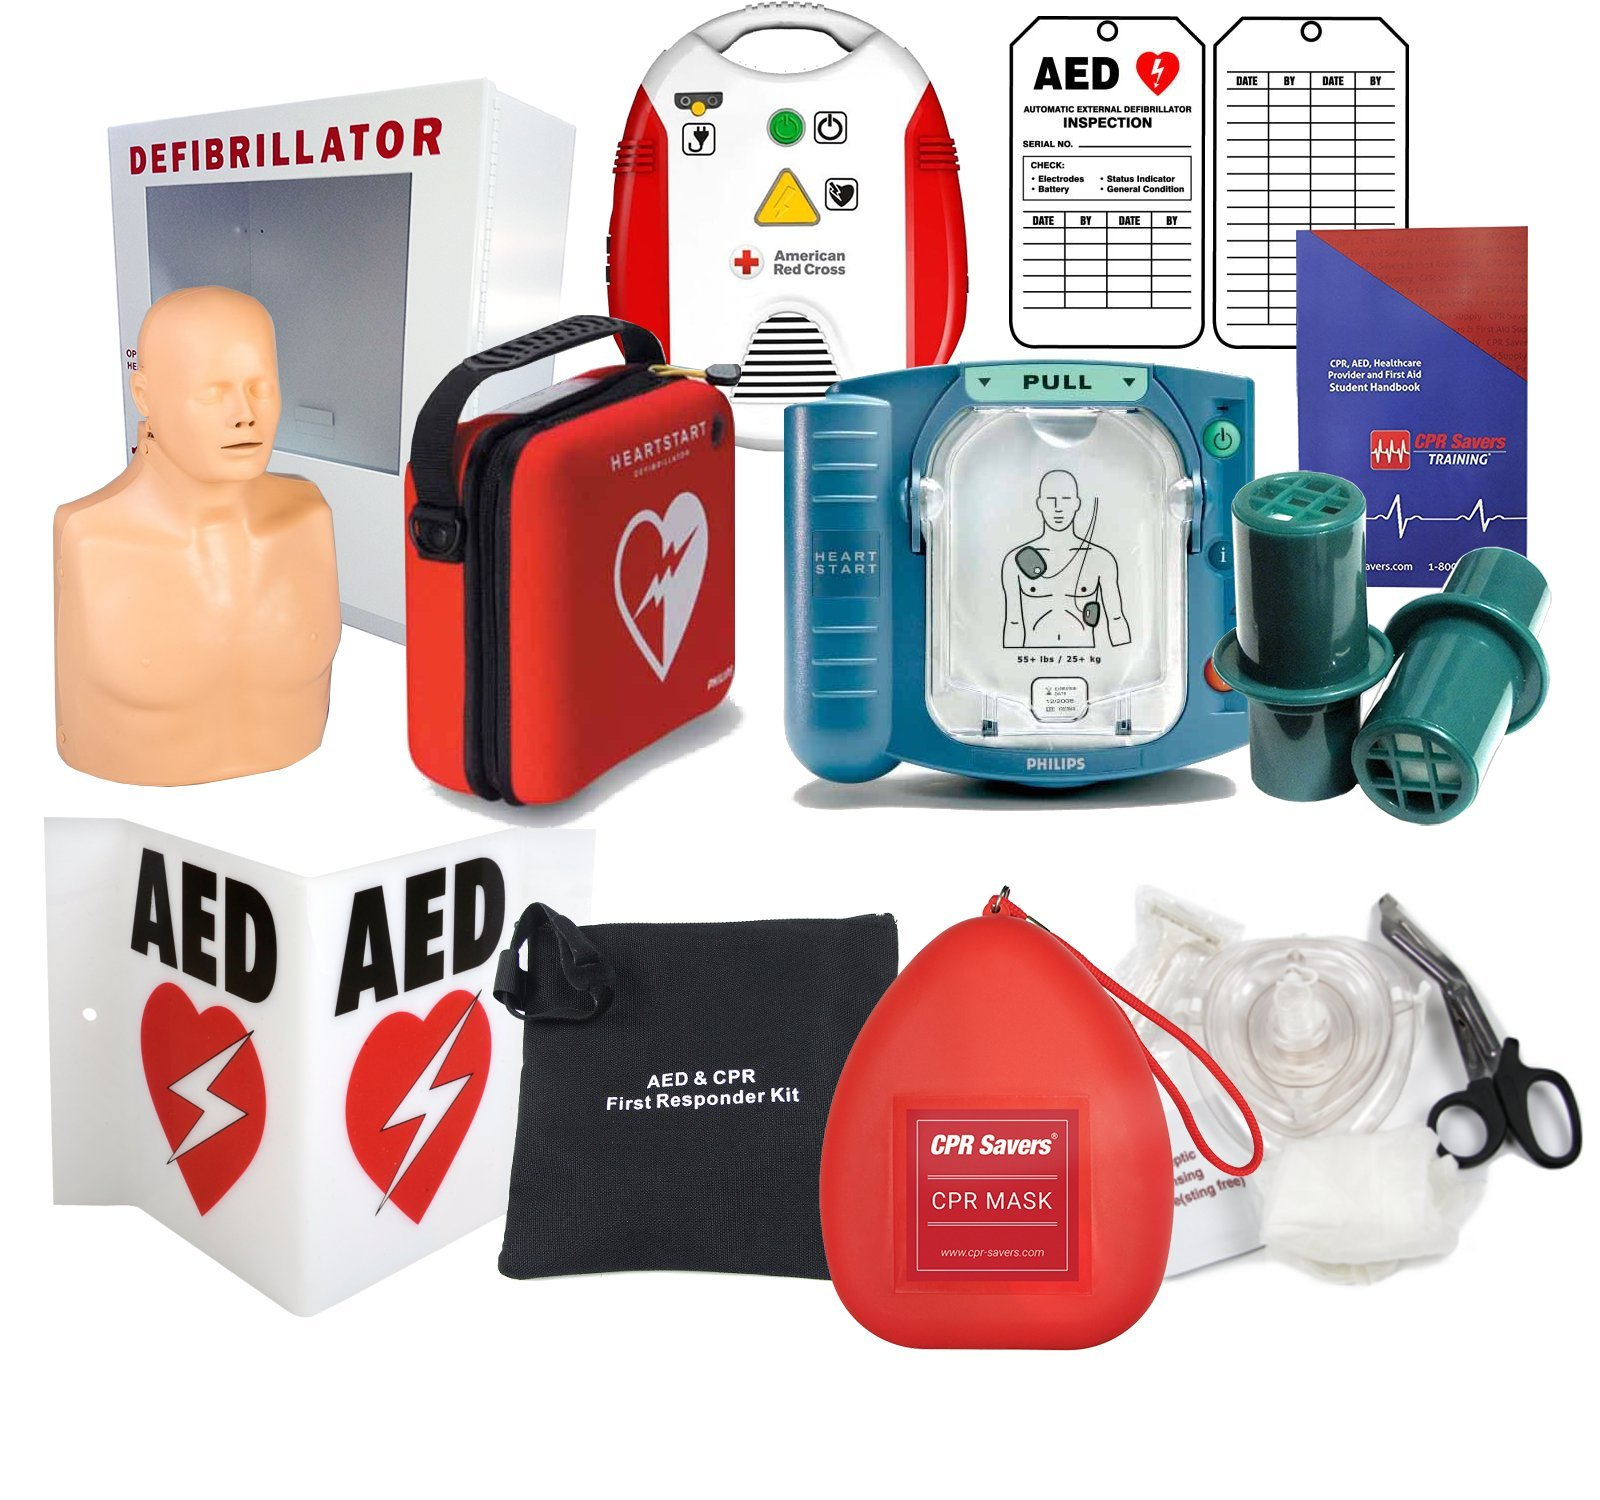 Deluxe AED Defibrillator and Training Package